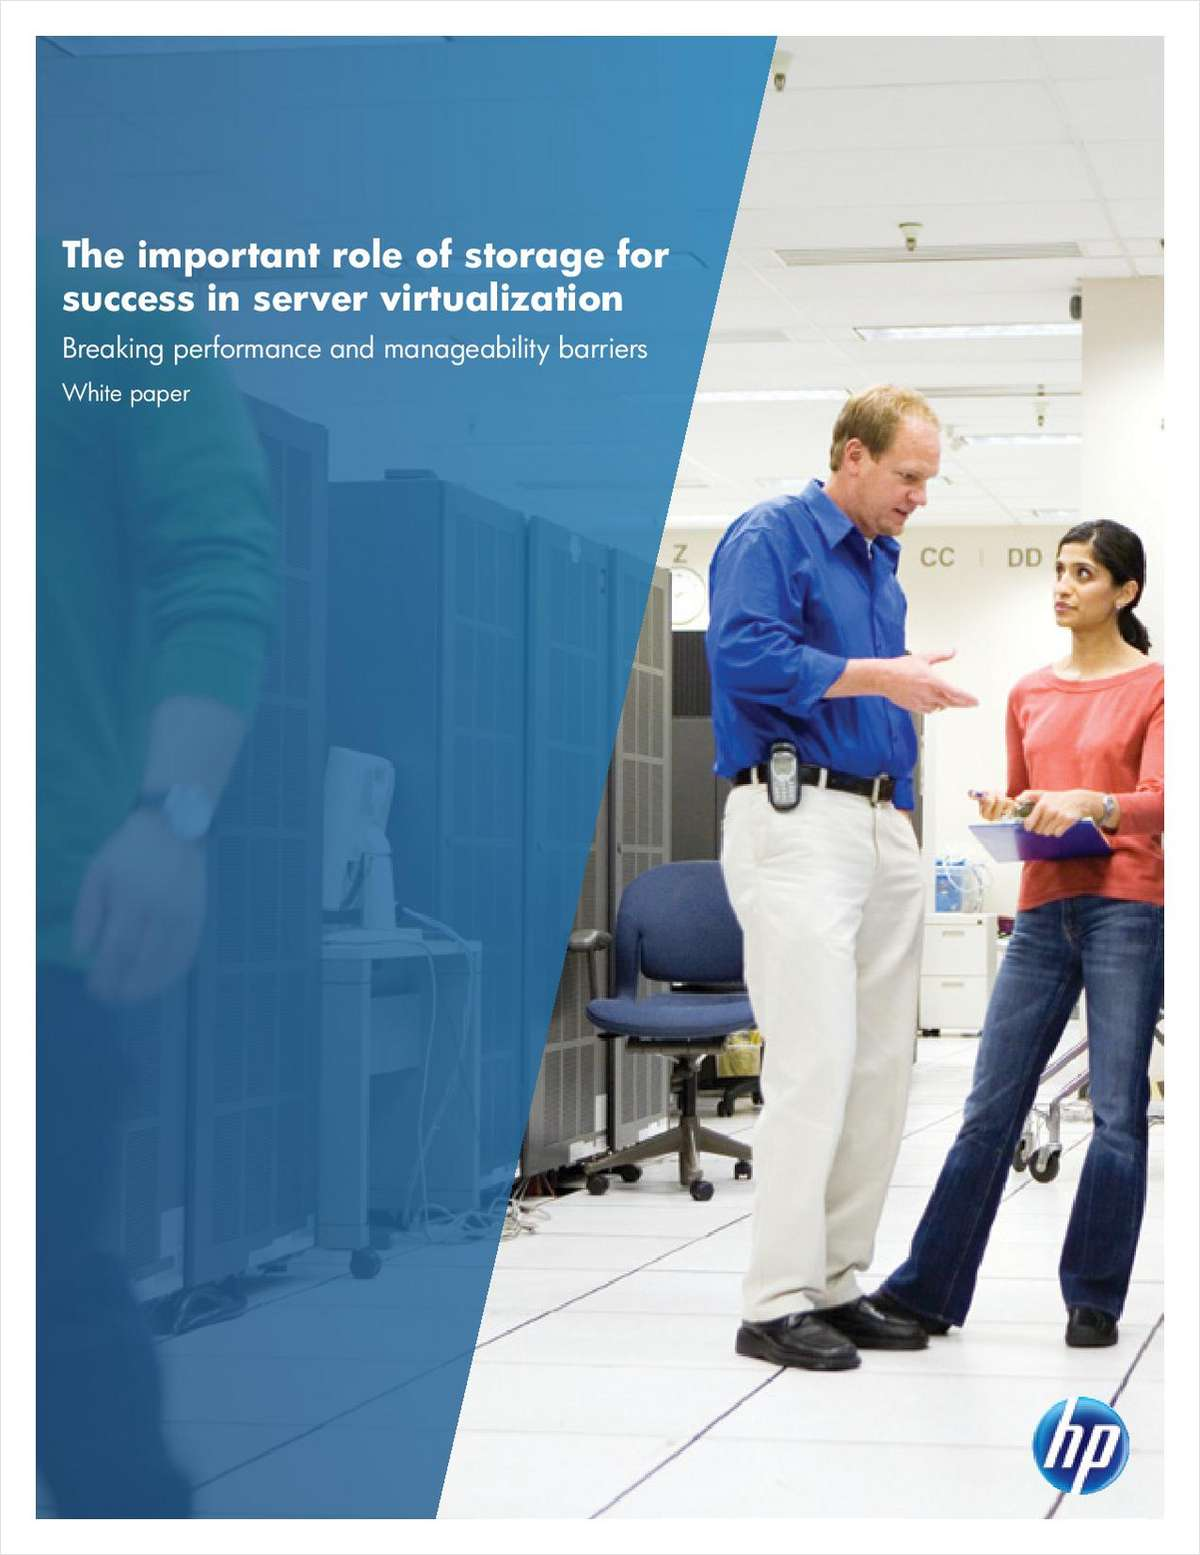 The Important Role of Storage for Success in Server Virtualization